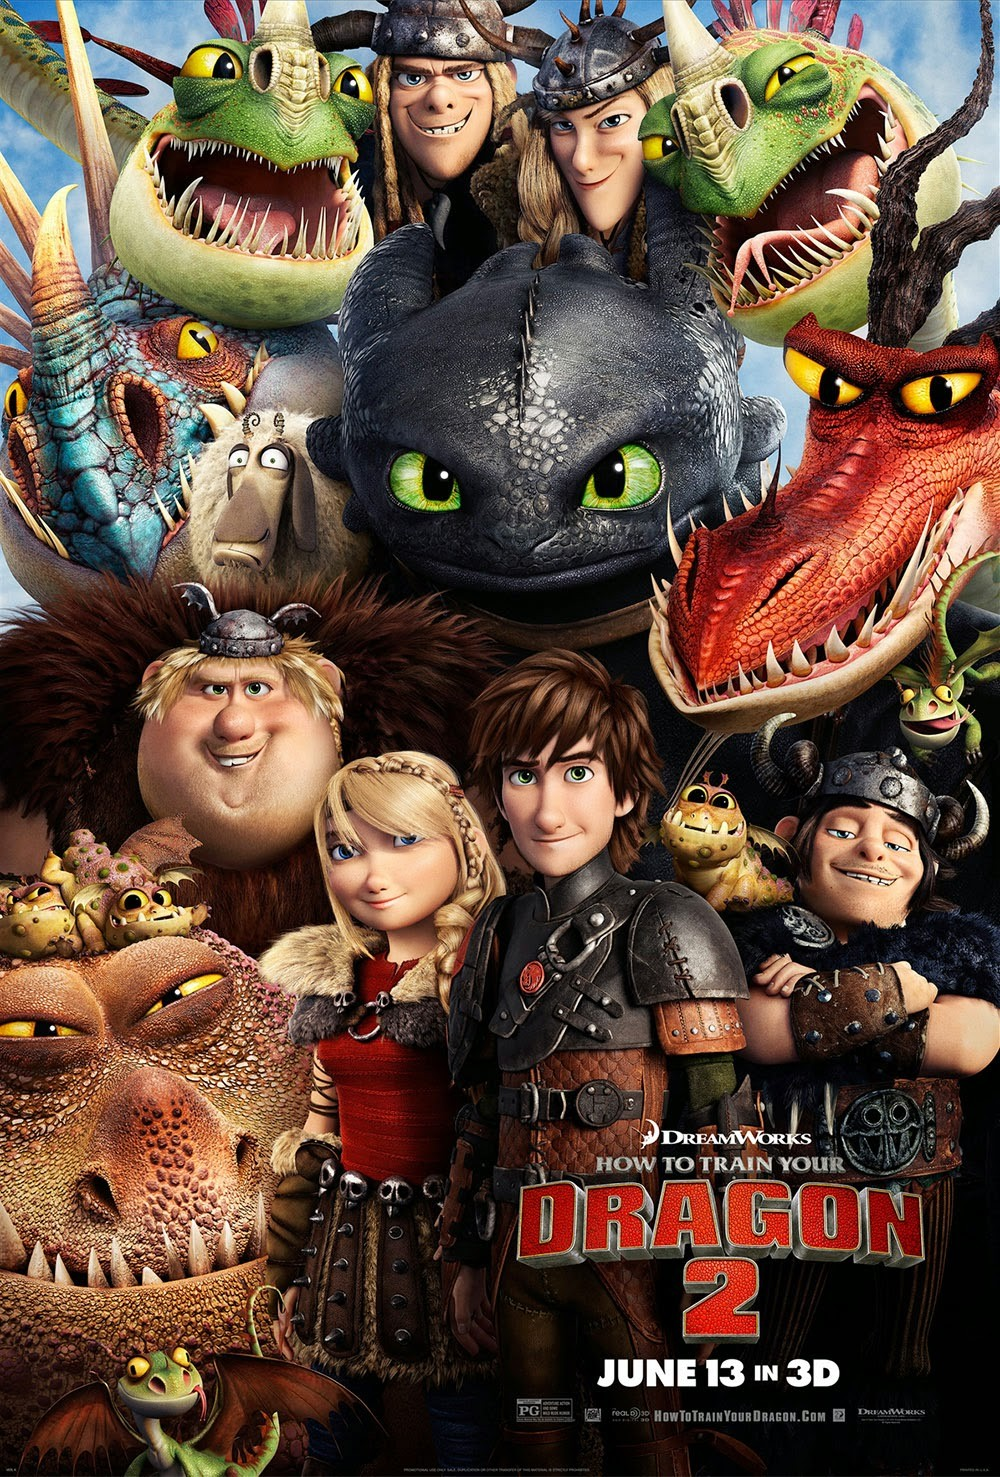 How to Train Your Dragon 2-Official Poster Banner PROMO XLG-06MAIO2014